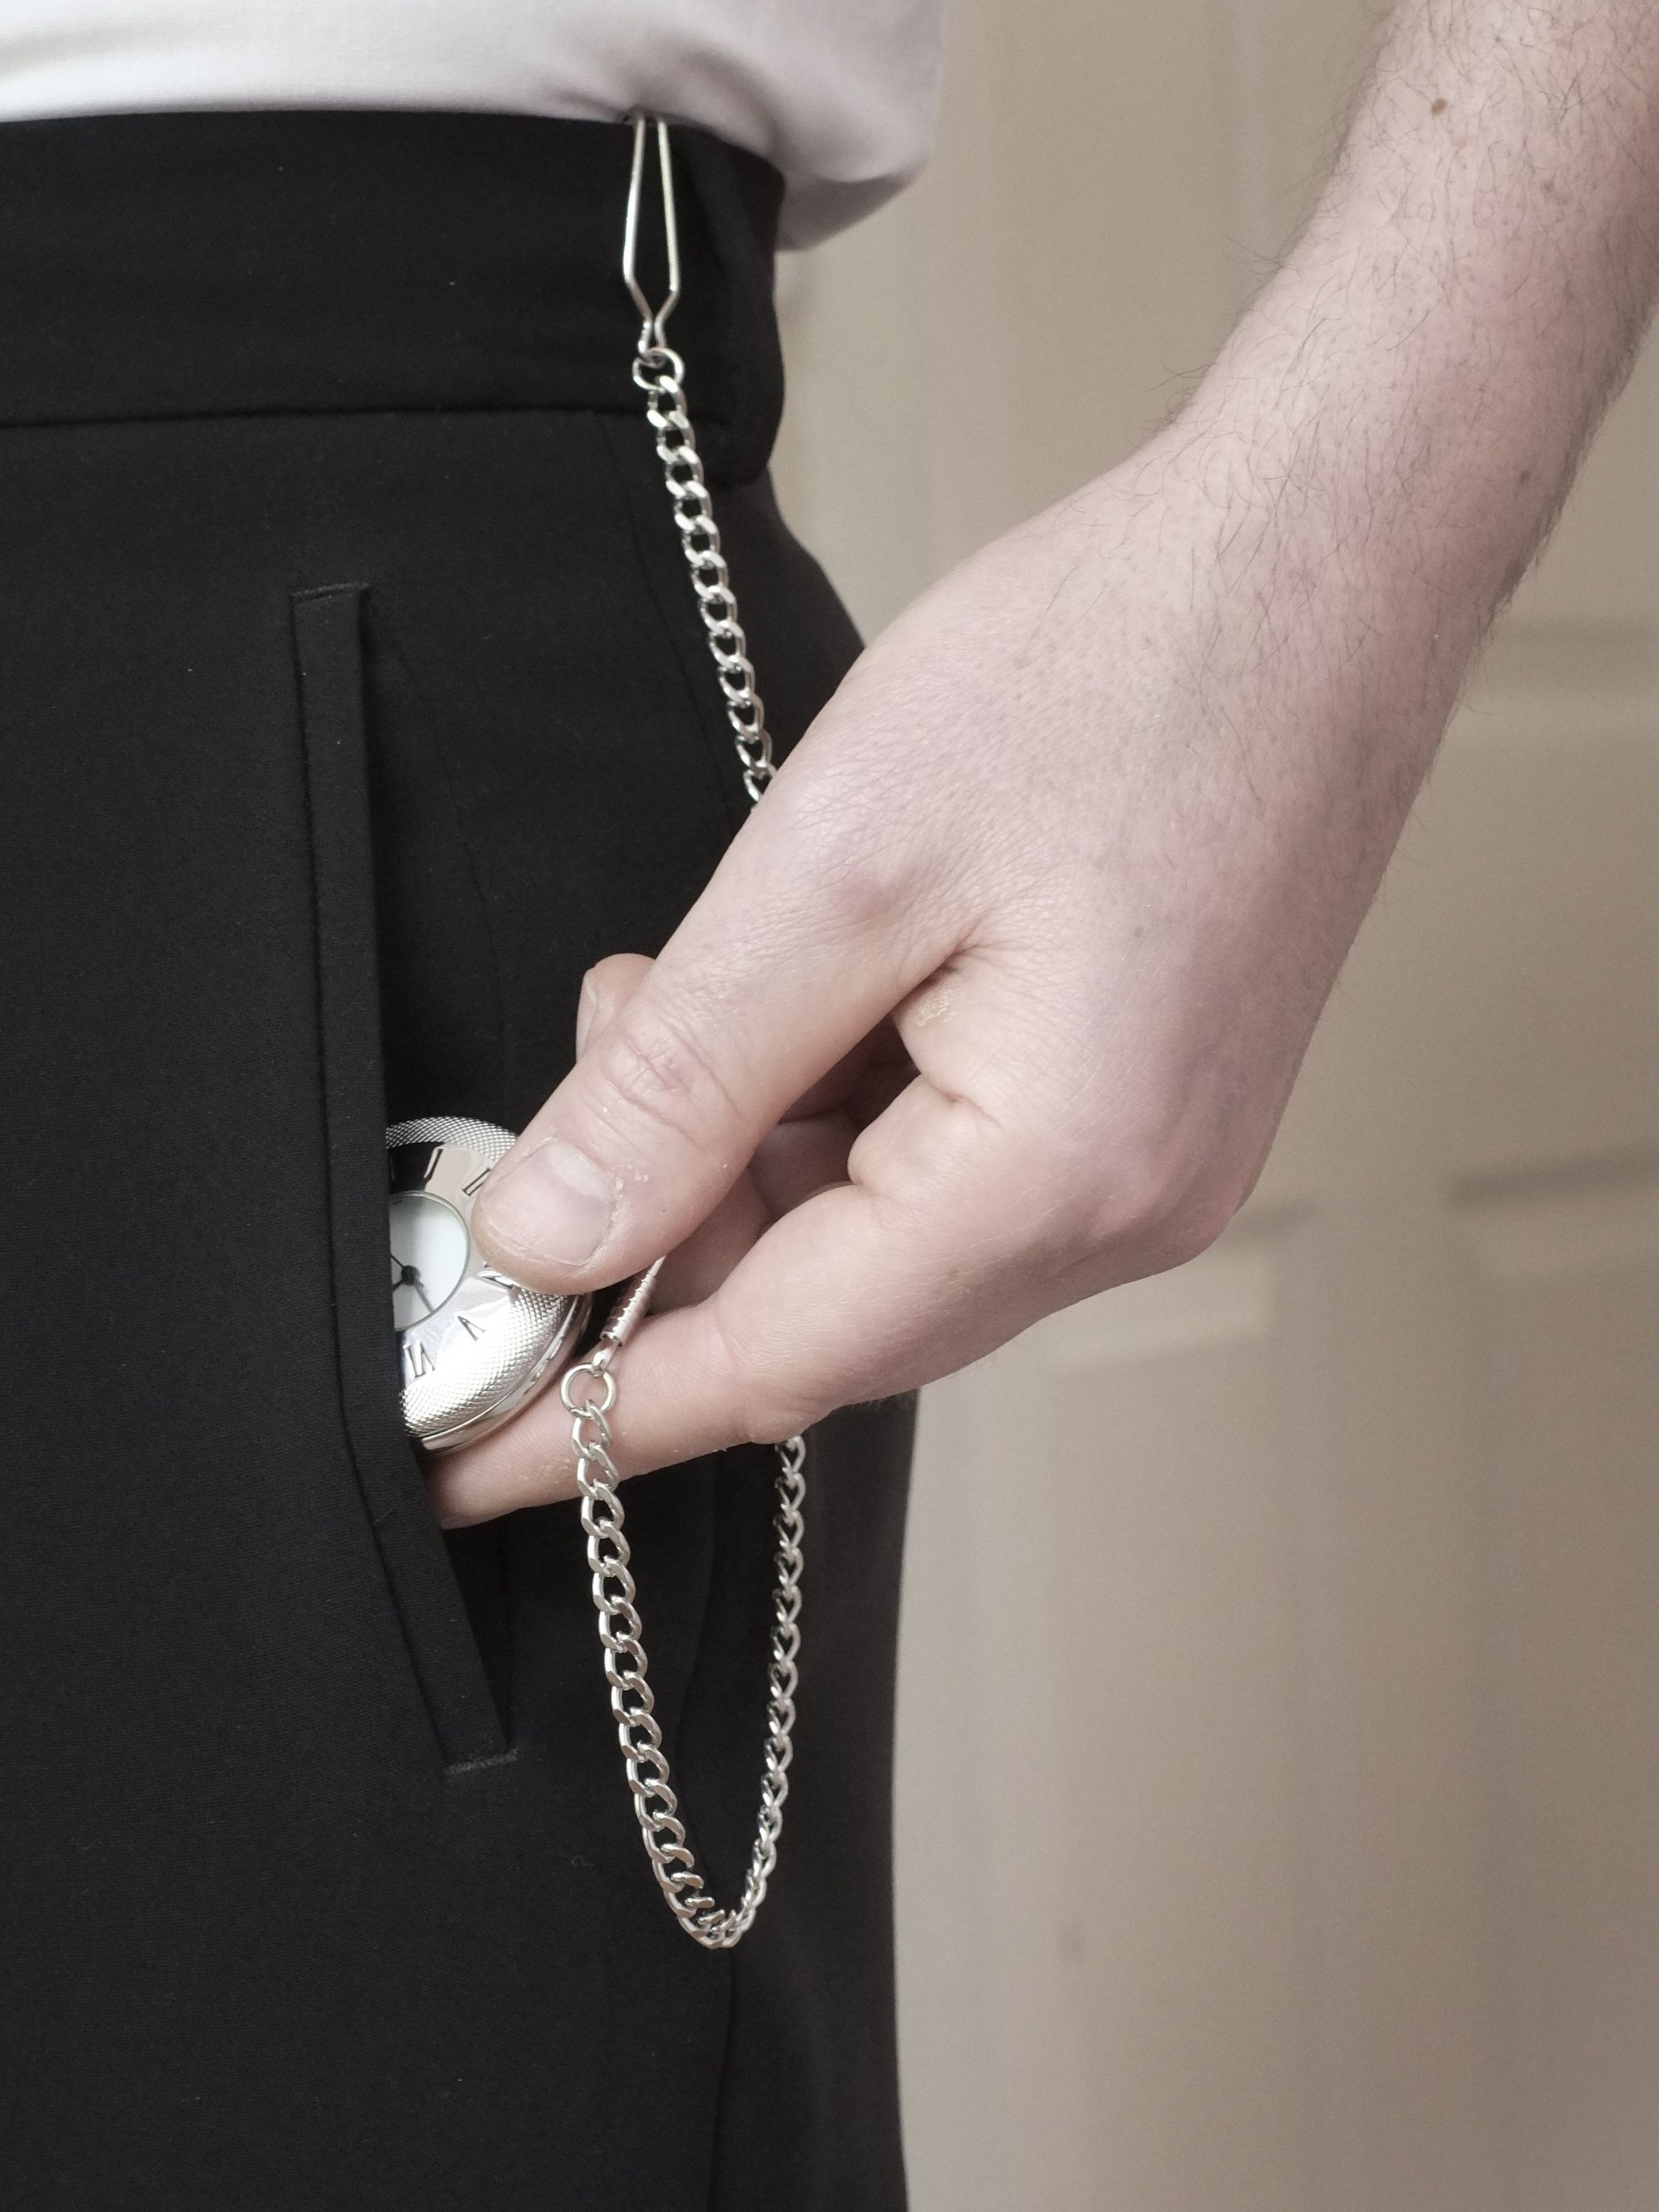 Watch pocket and chain how to wear